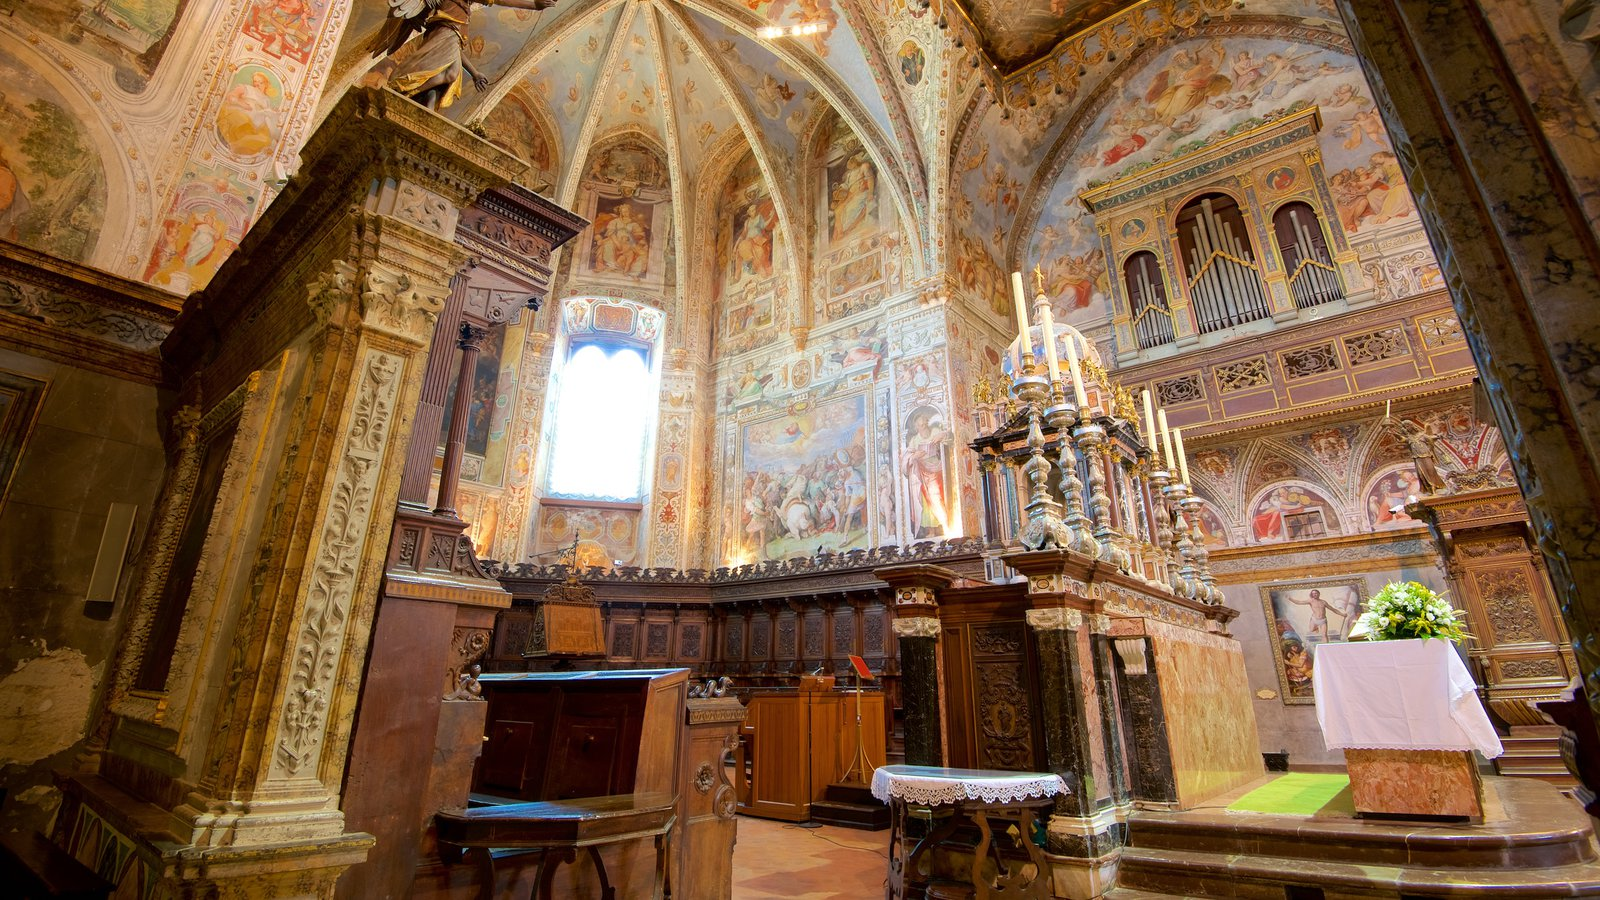 Basilica San Pietro featuring interior views, a church or cathedral and religious elements